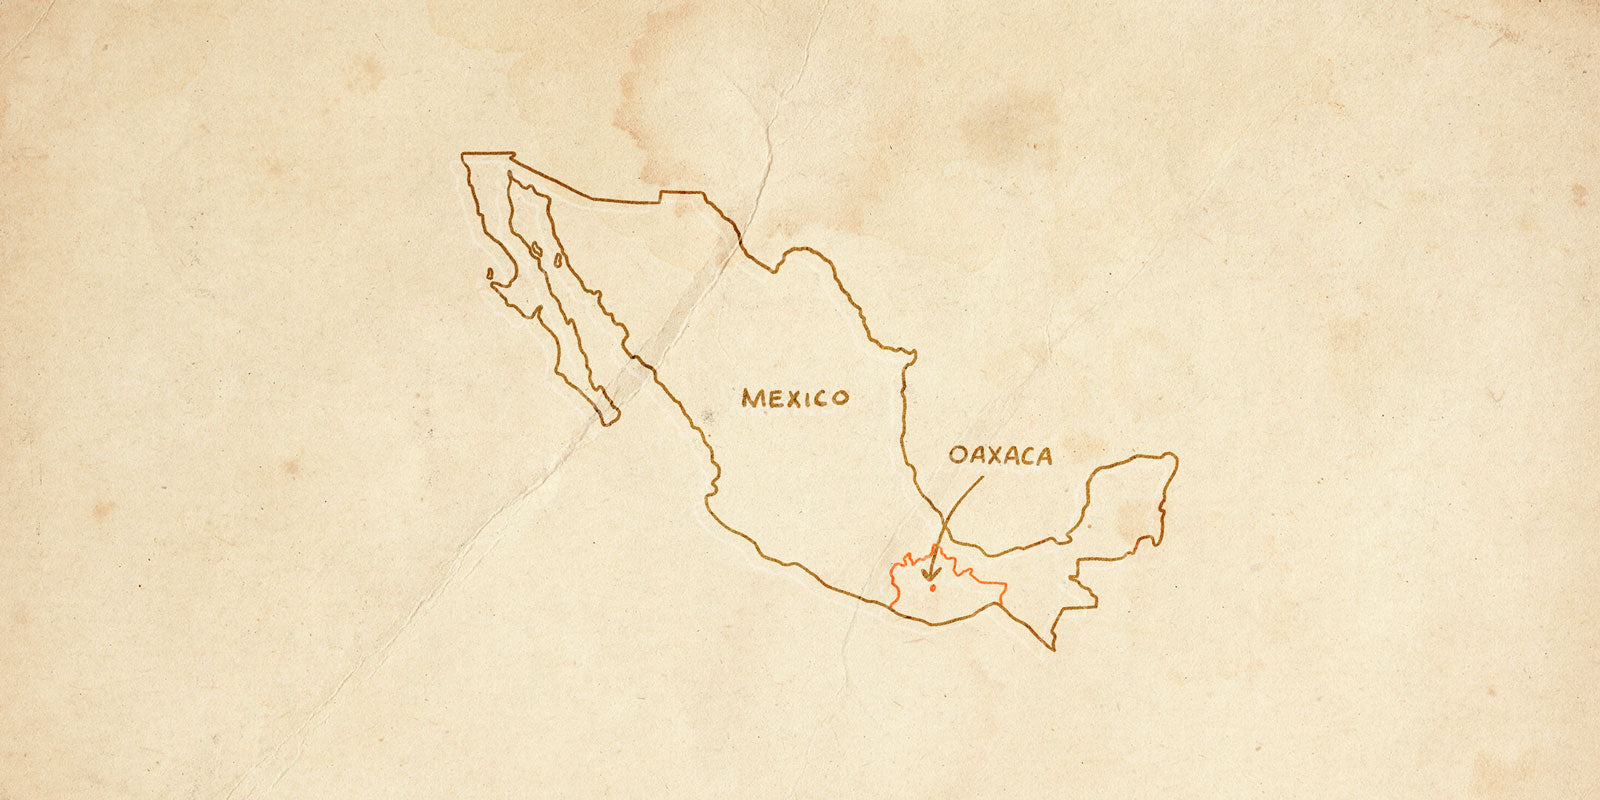 hand drawn map of mexico oaxaca